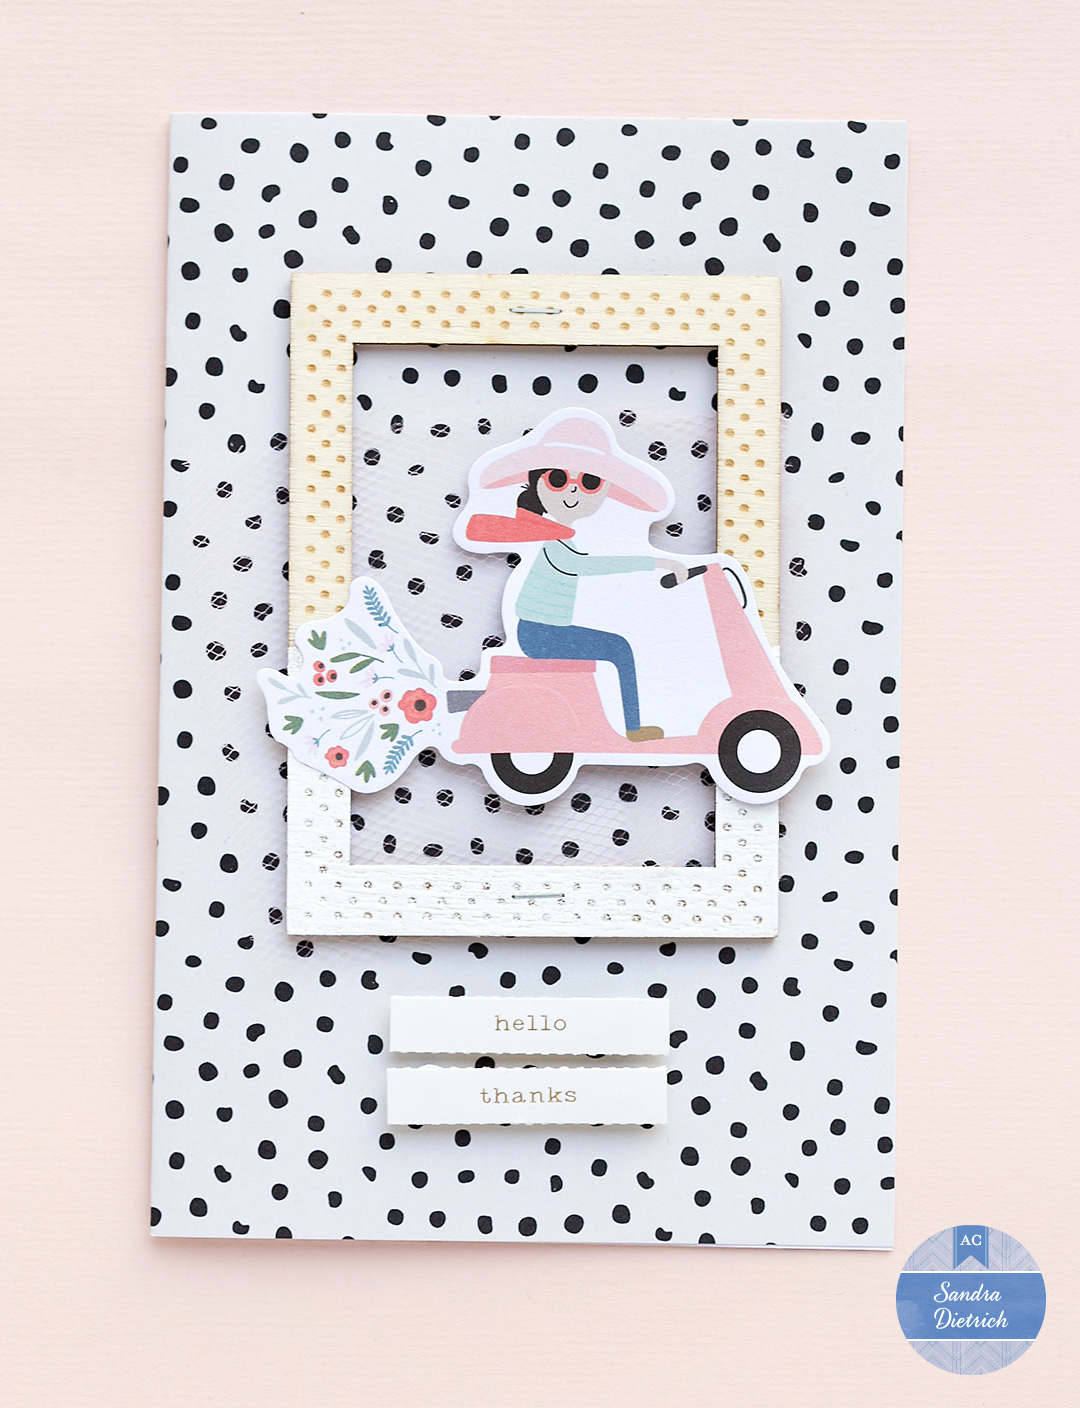 Thank you card with a customized wooden frame. The card shows a girl on a scooter.